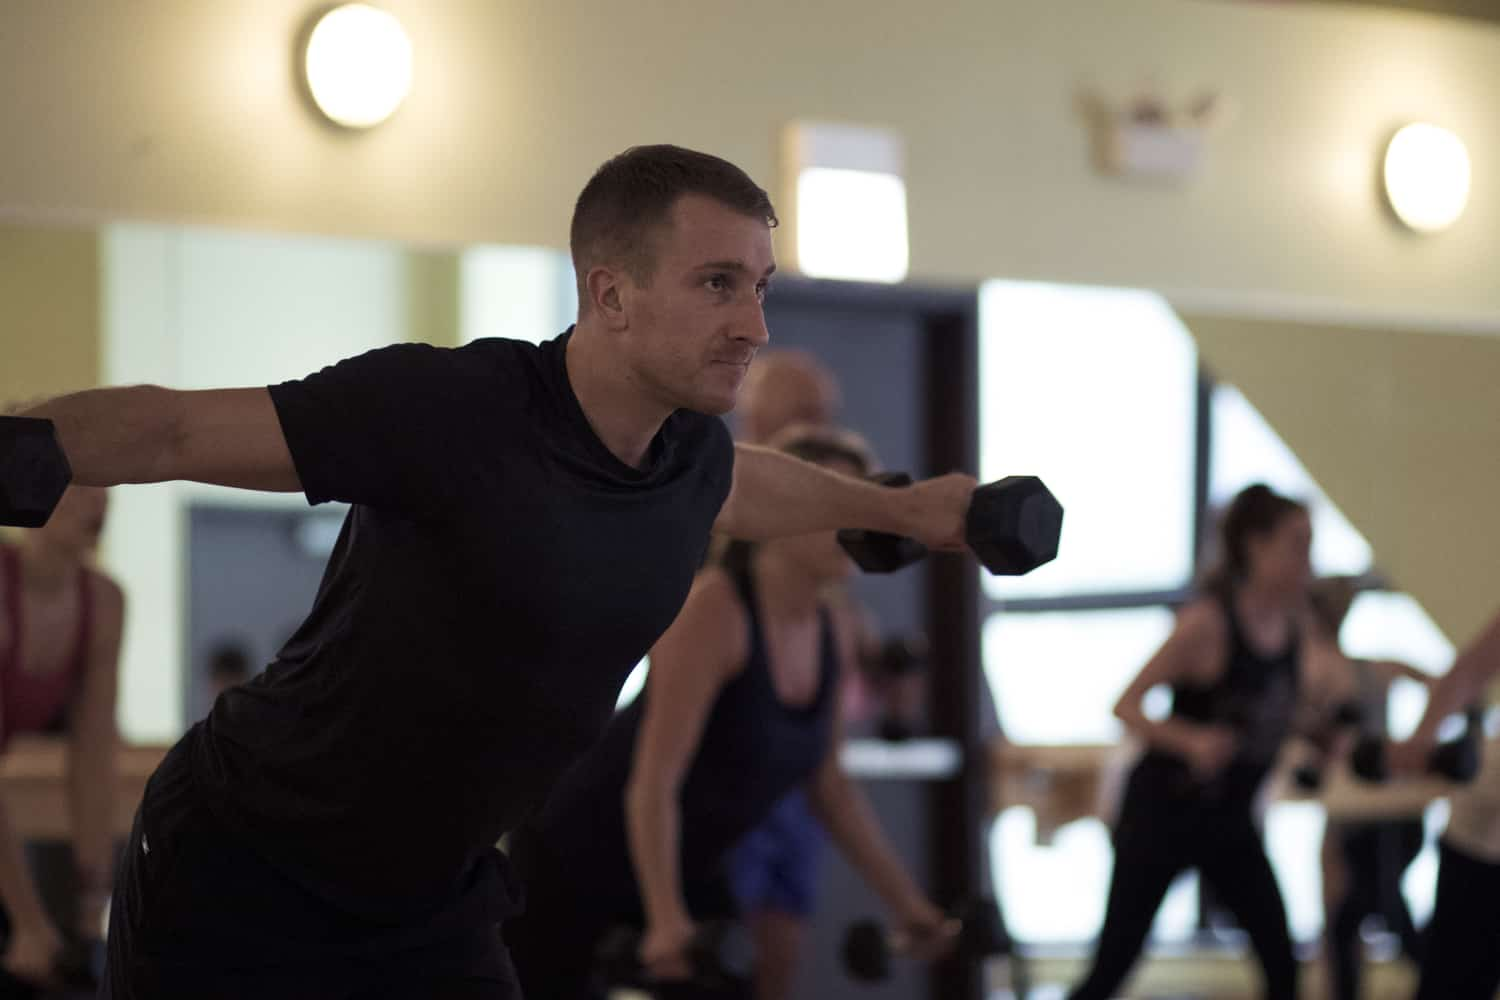 Man doing arm raises during a group fitness class at FFC.